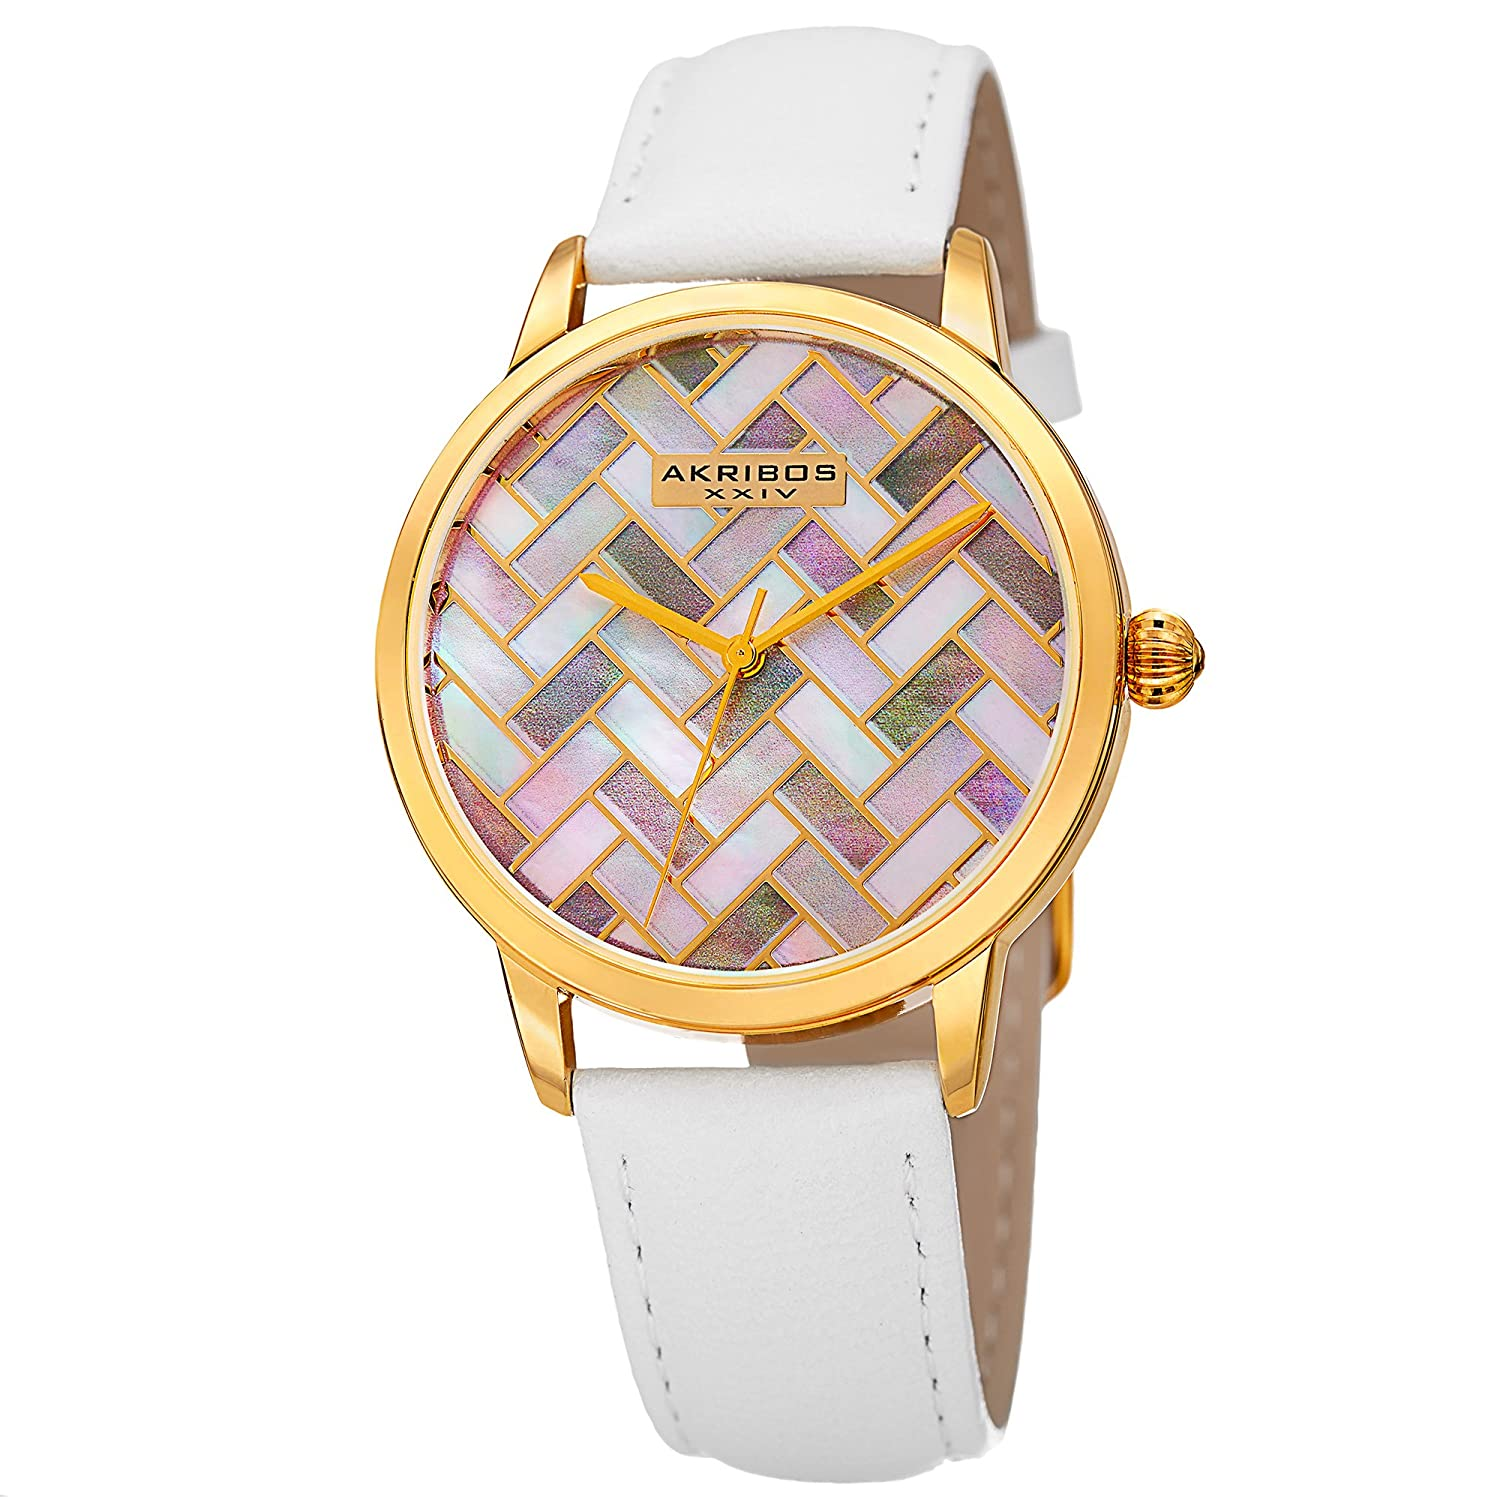 Akribos XXIV AK906 Women s Mother-of-Pearl Mosaic Dial with Glove Style Genuine Leather Strap Watch